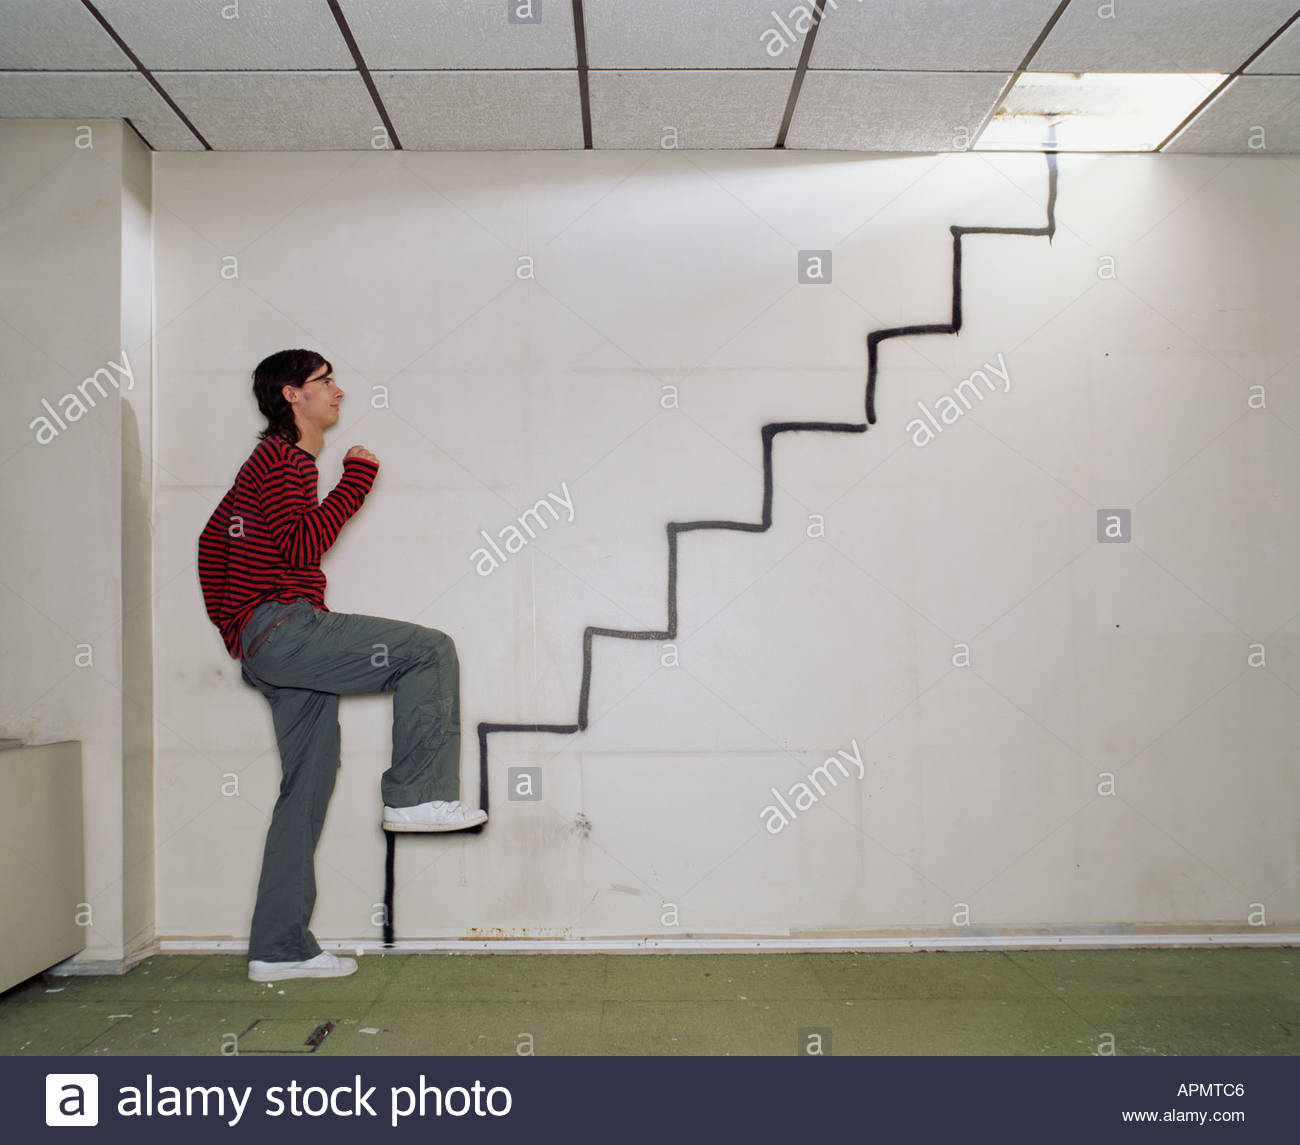 Man walking up a spray painted stairway - Stock Image